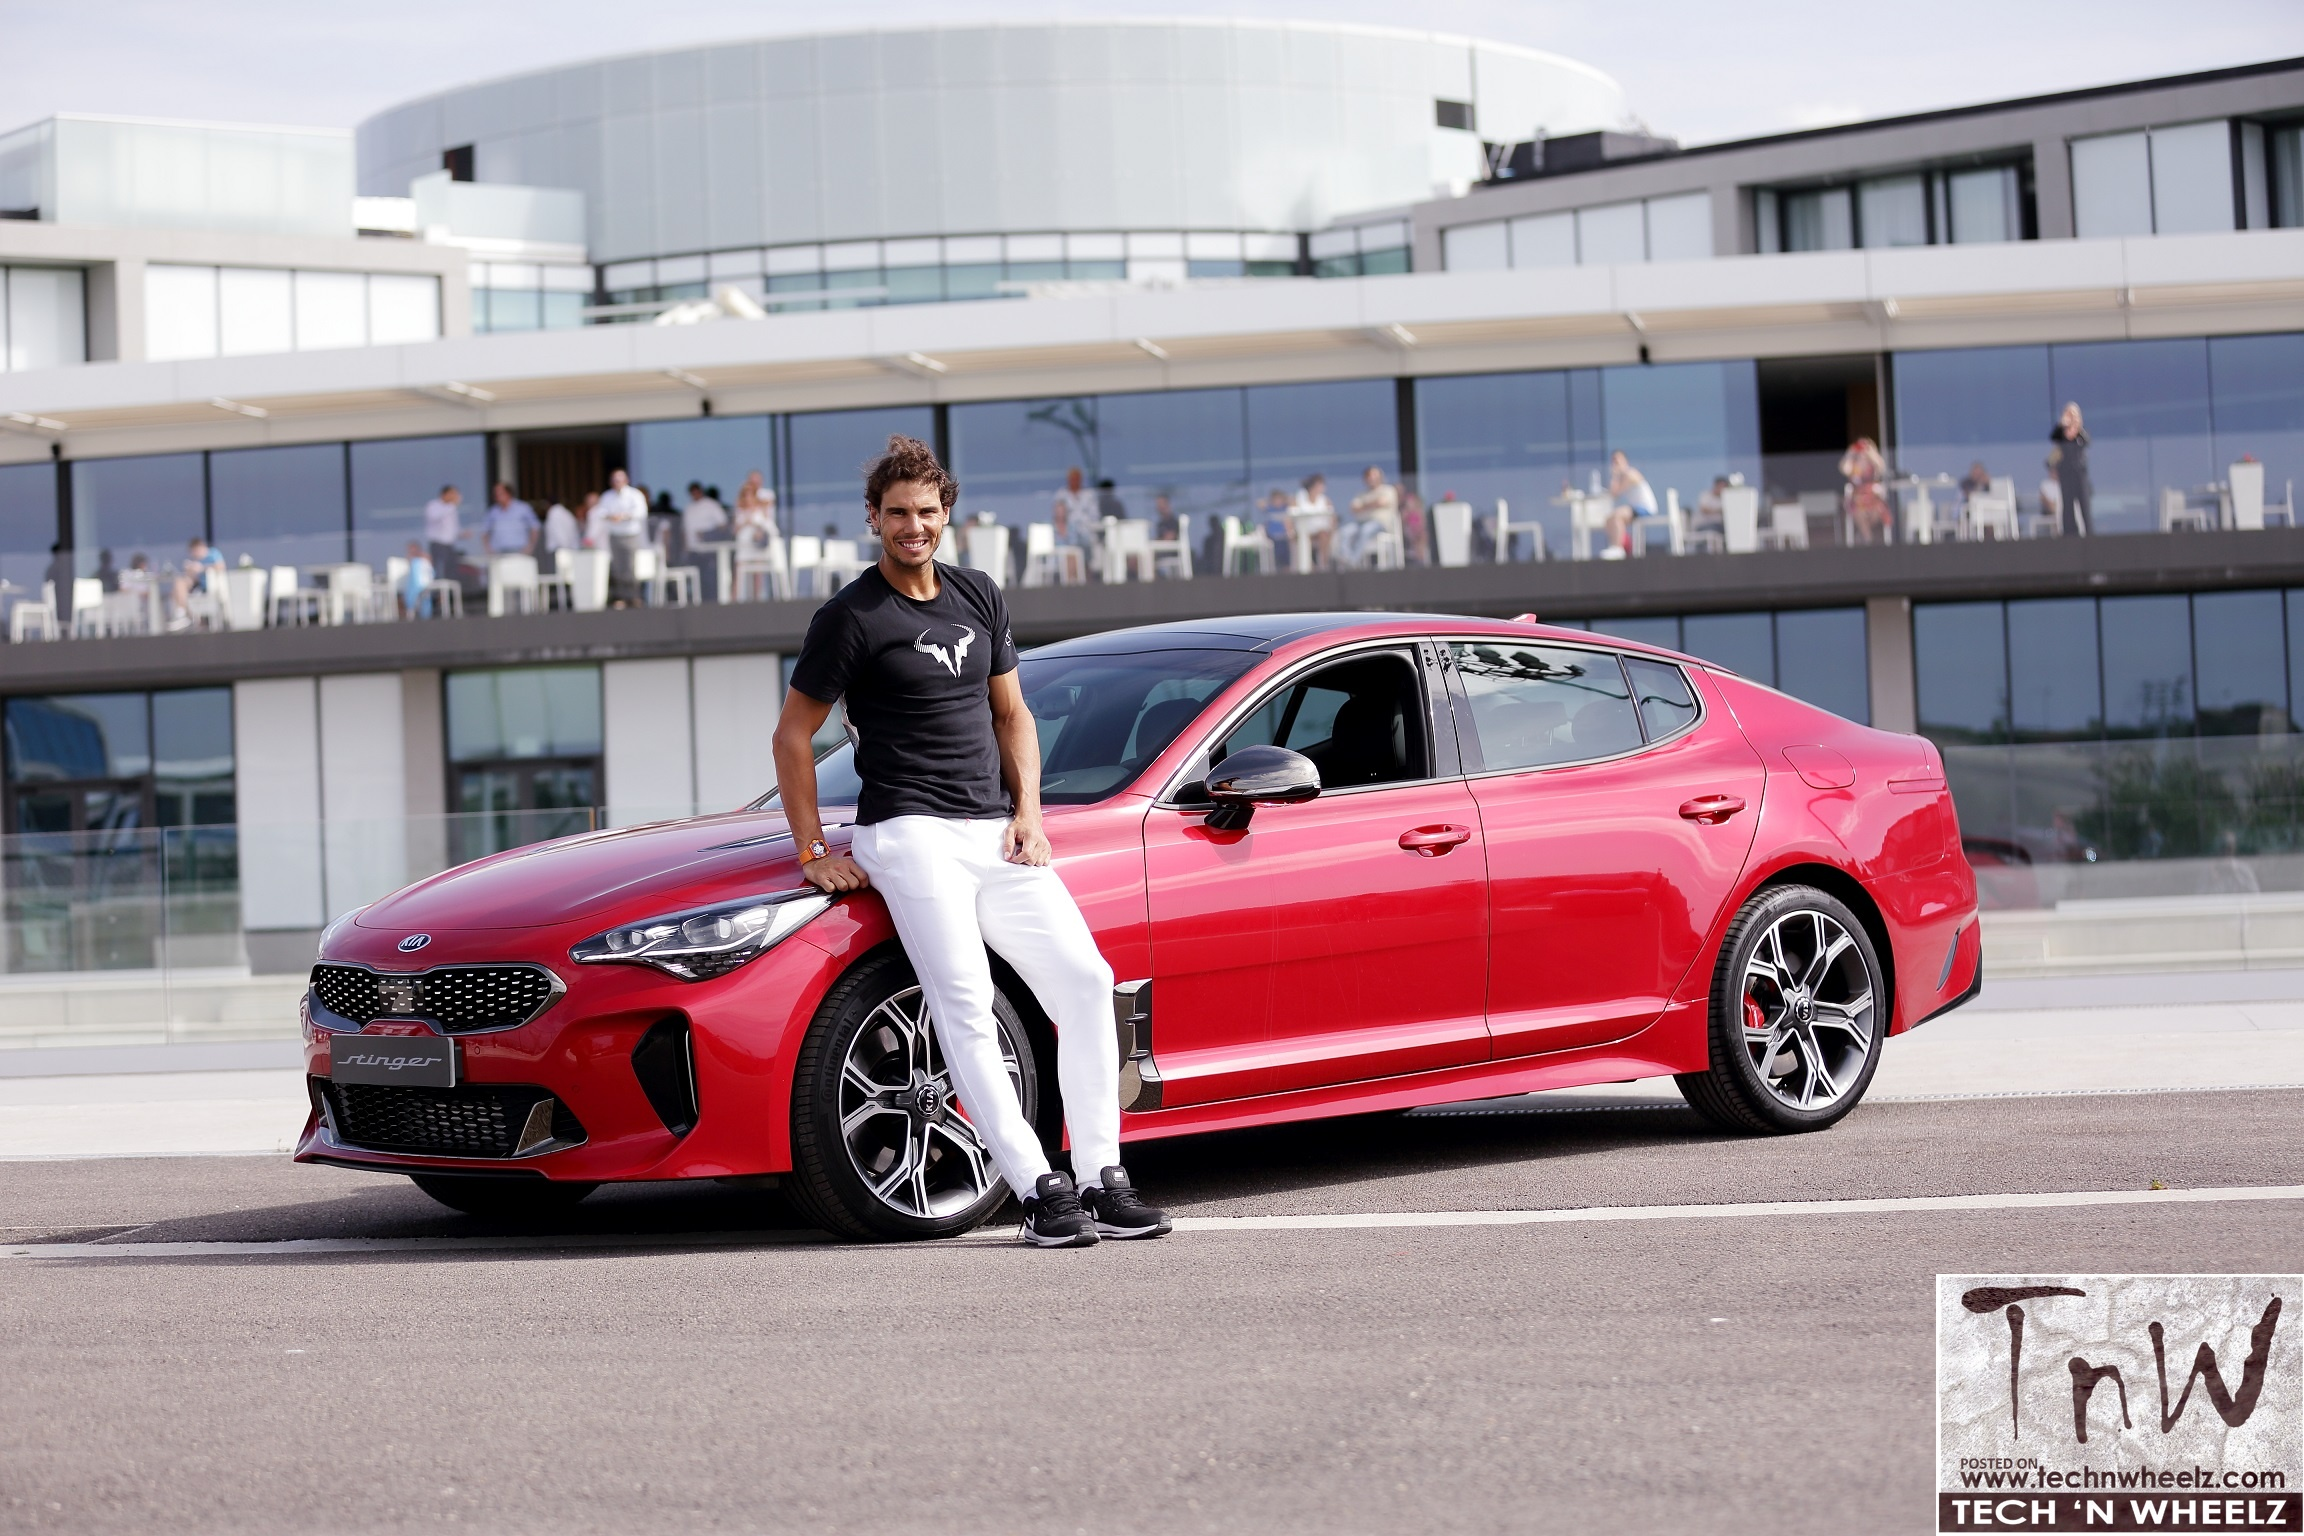 Kia gifts the Stinger to Rafael Nadal – the world's number one tennis player